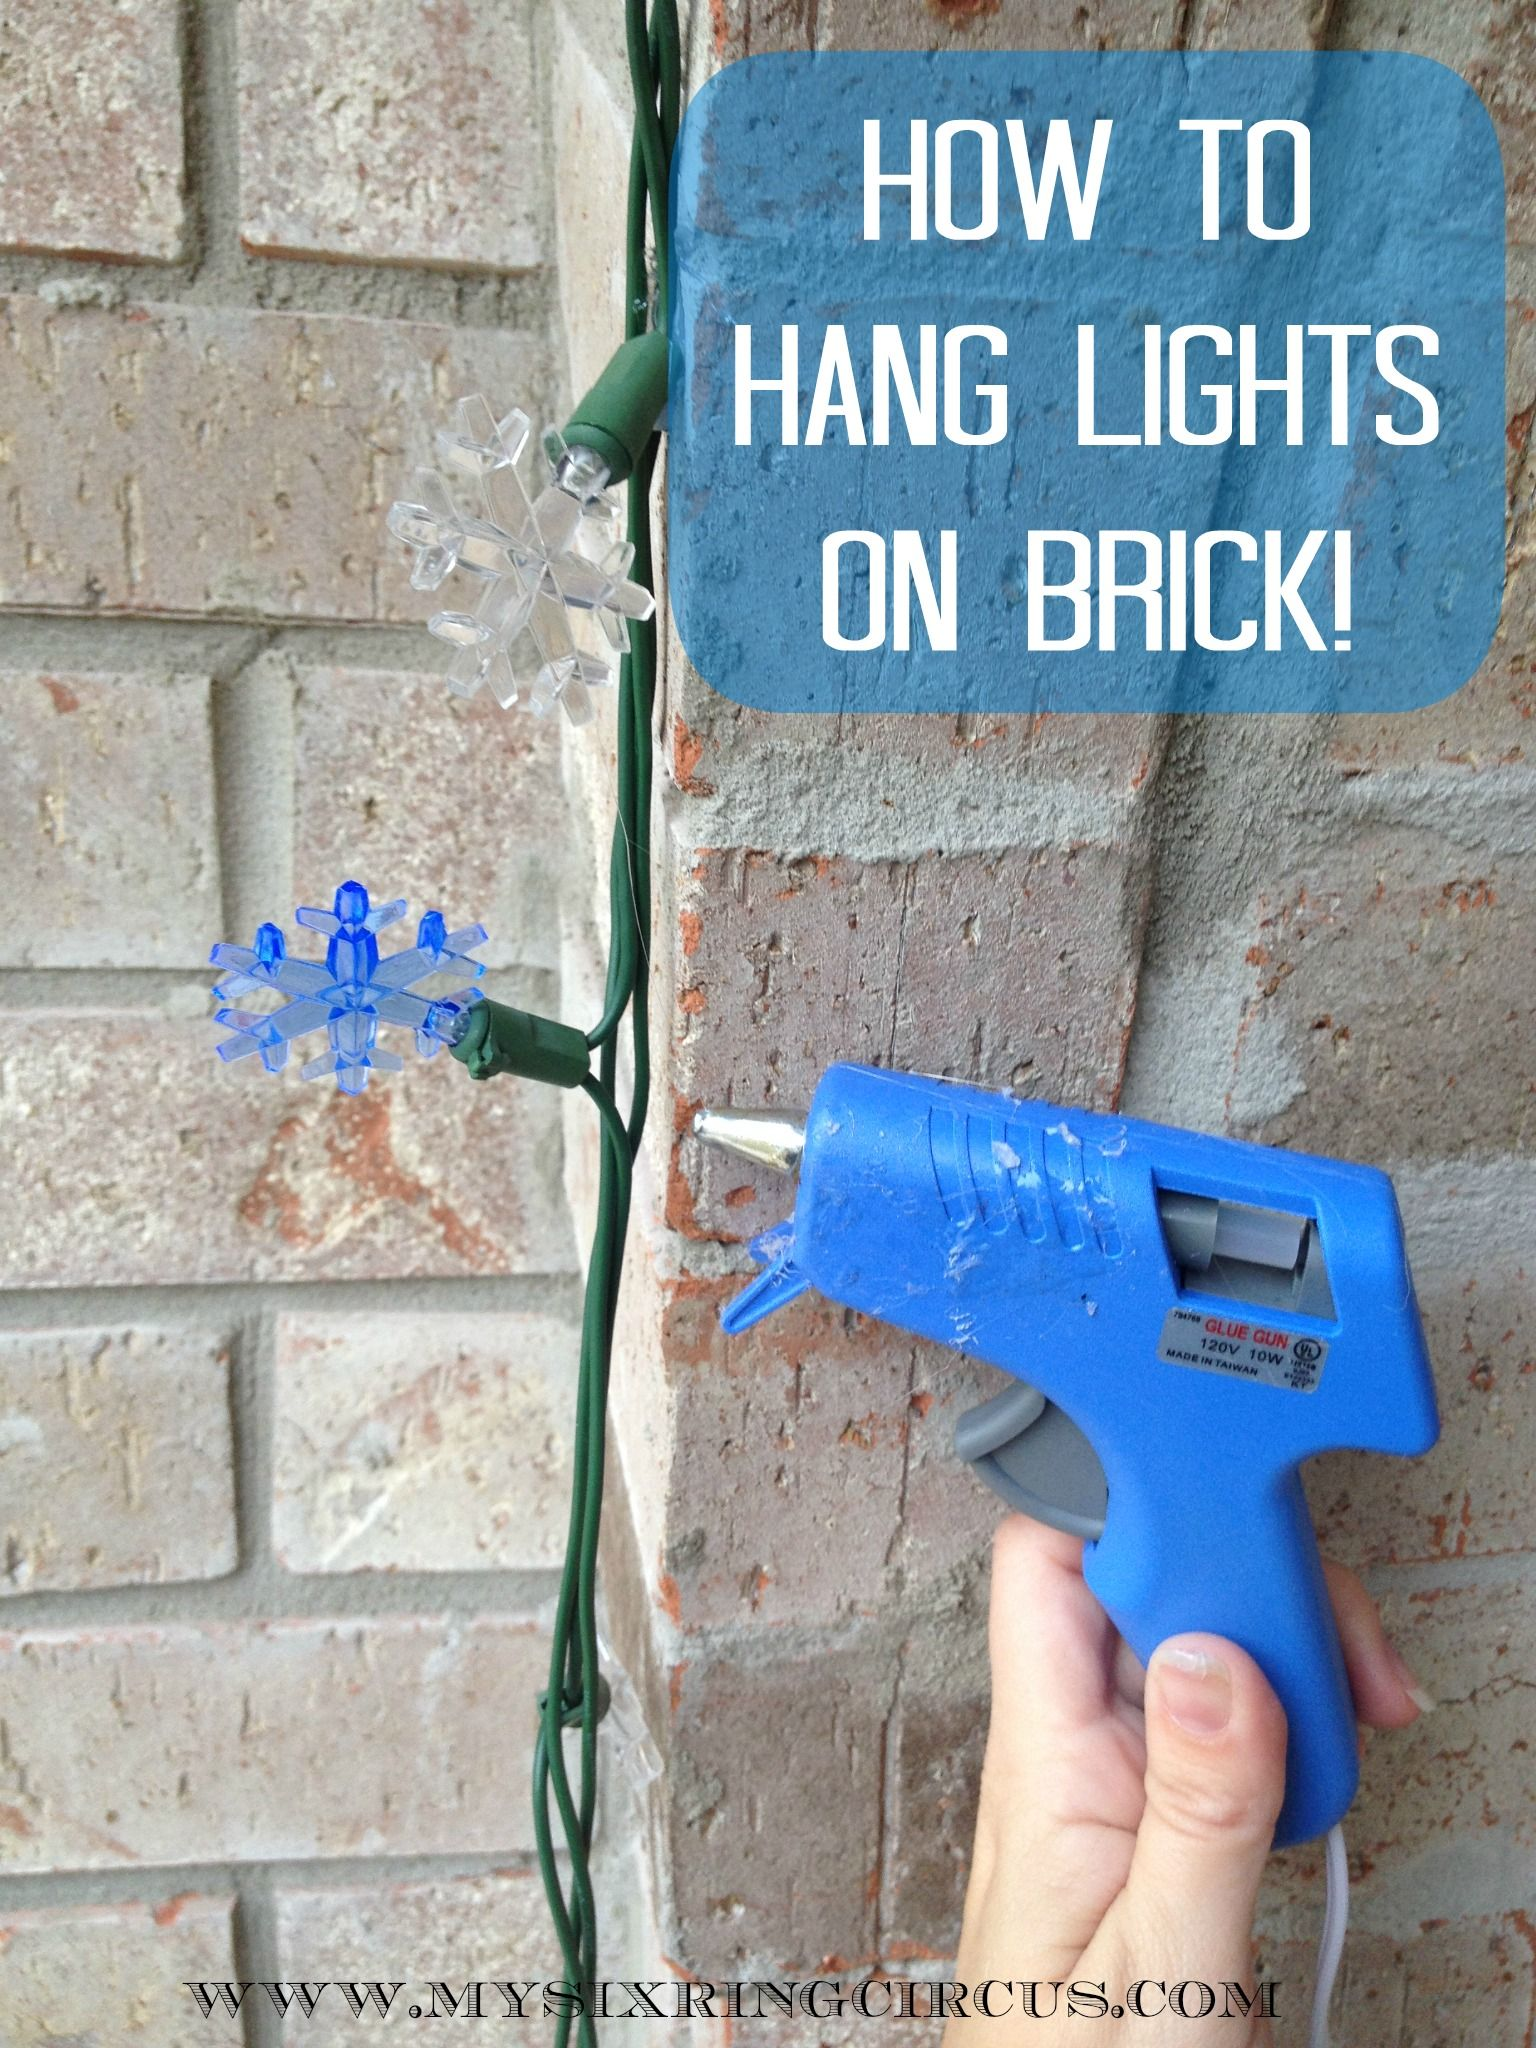 How to hang lights on brick in three easy steps! This will save you time